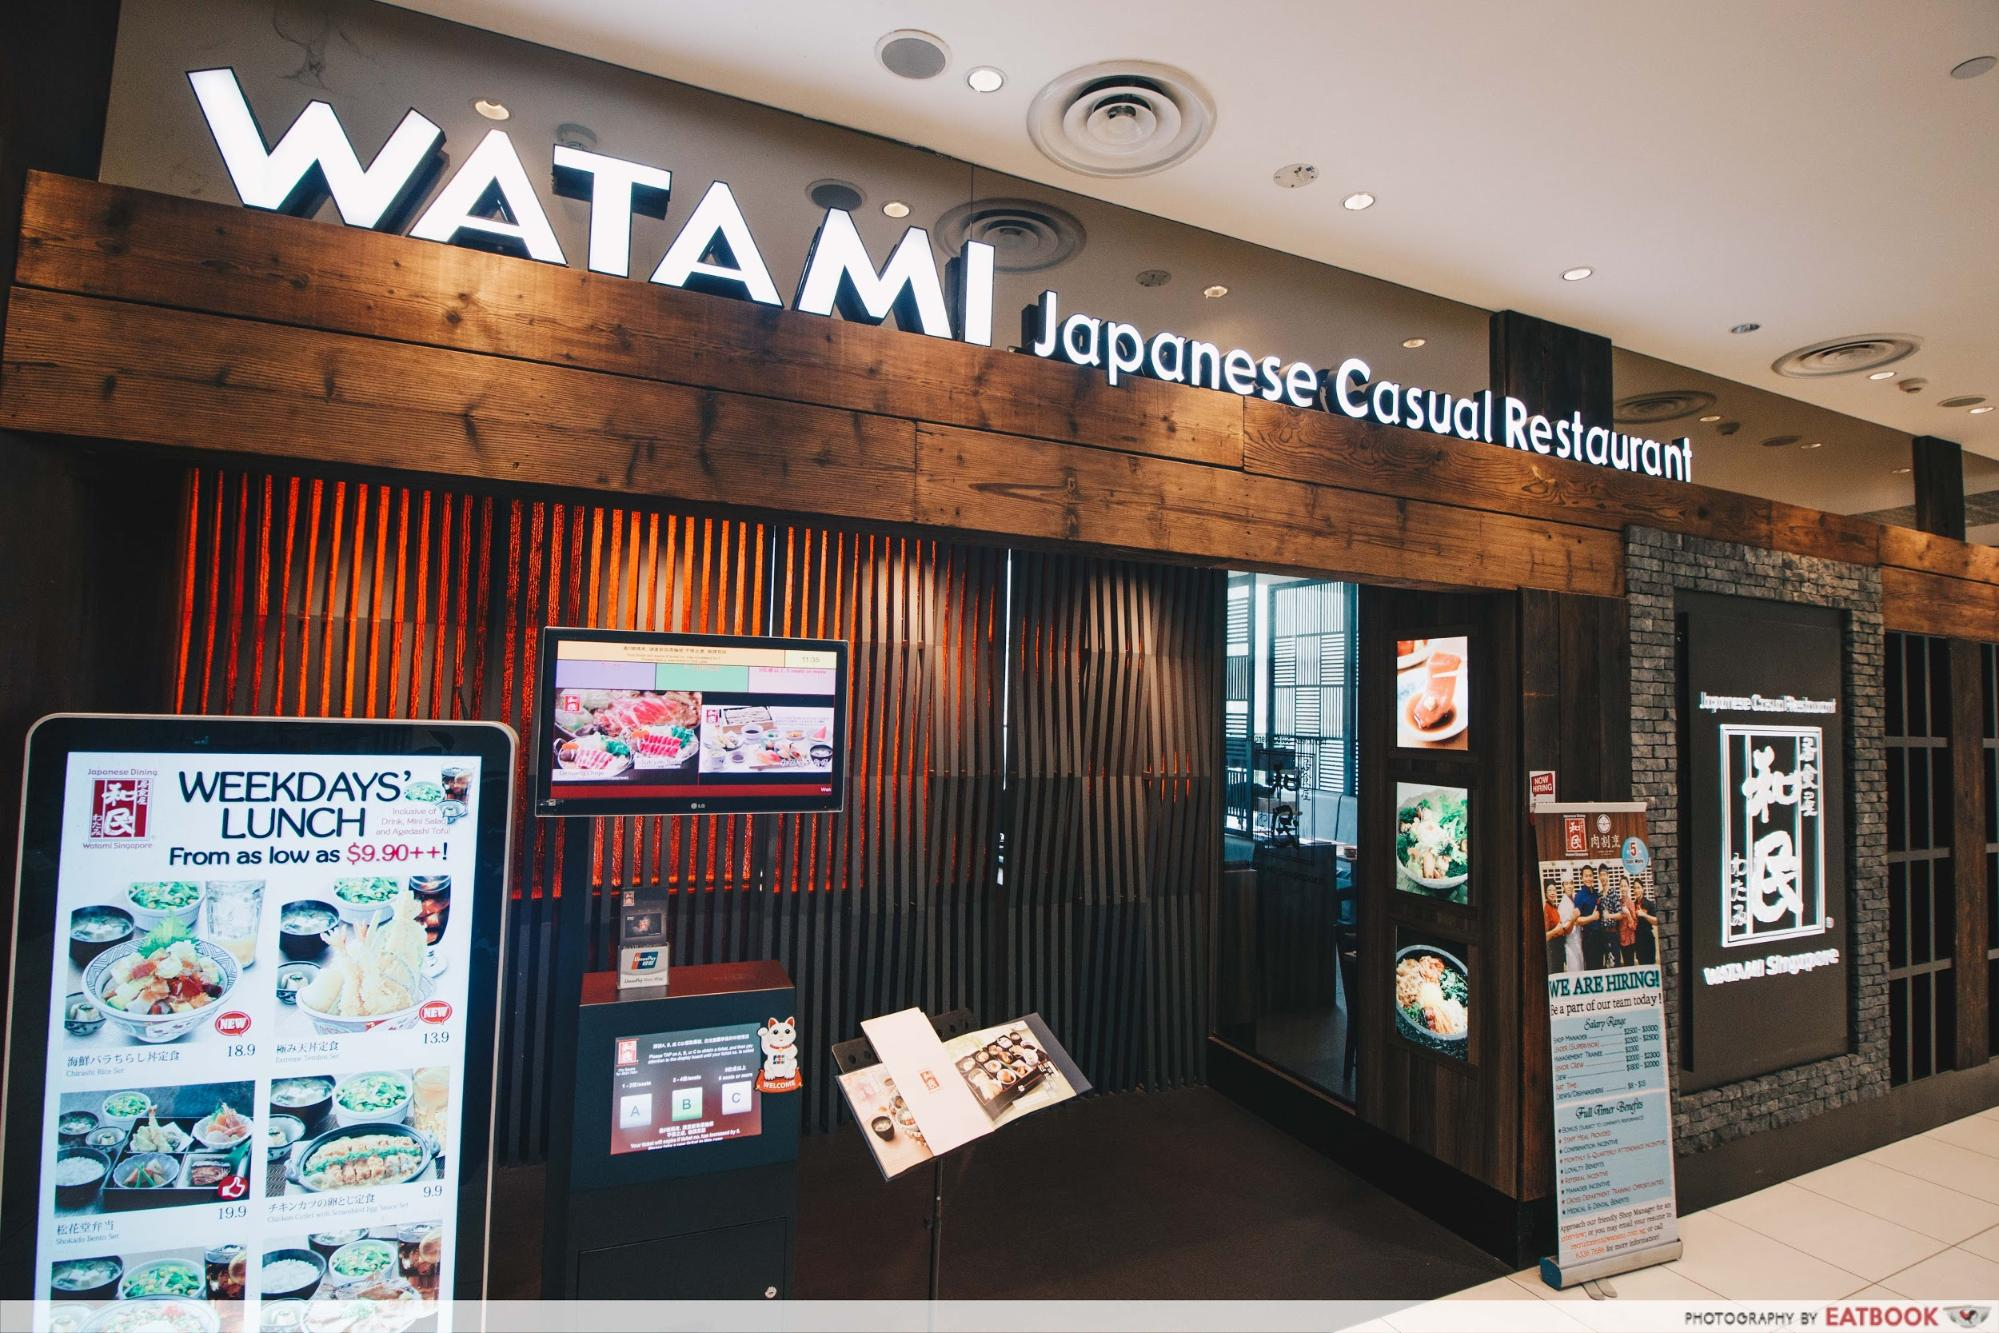 New Restaurant City Square Mall - Watami